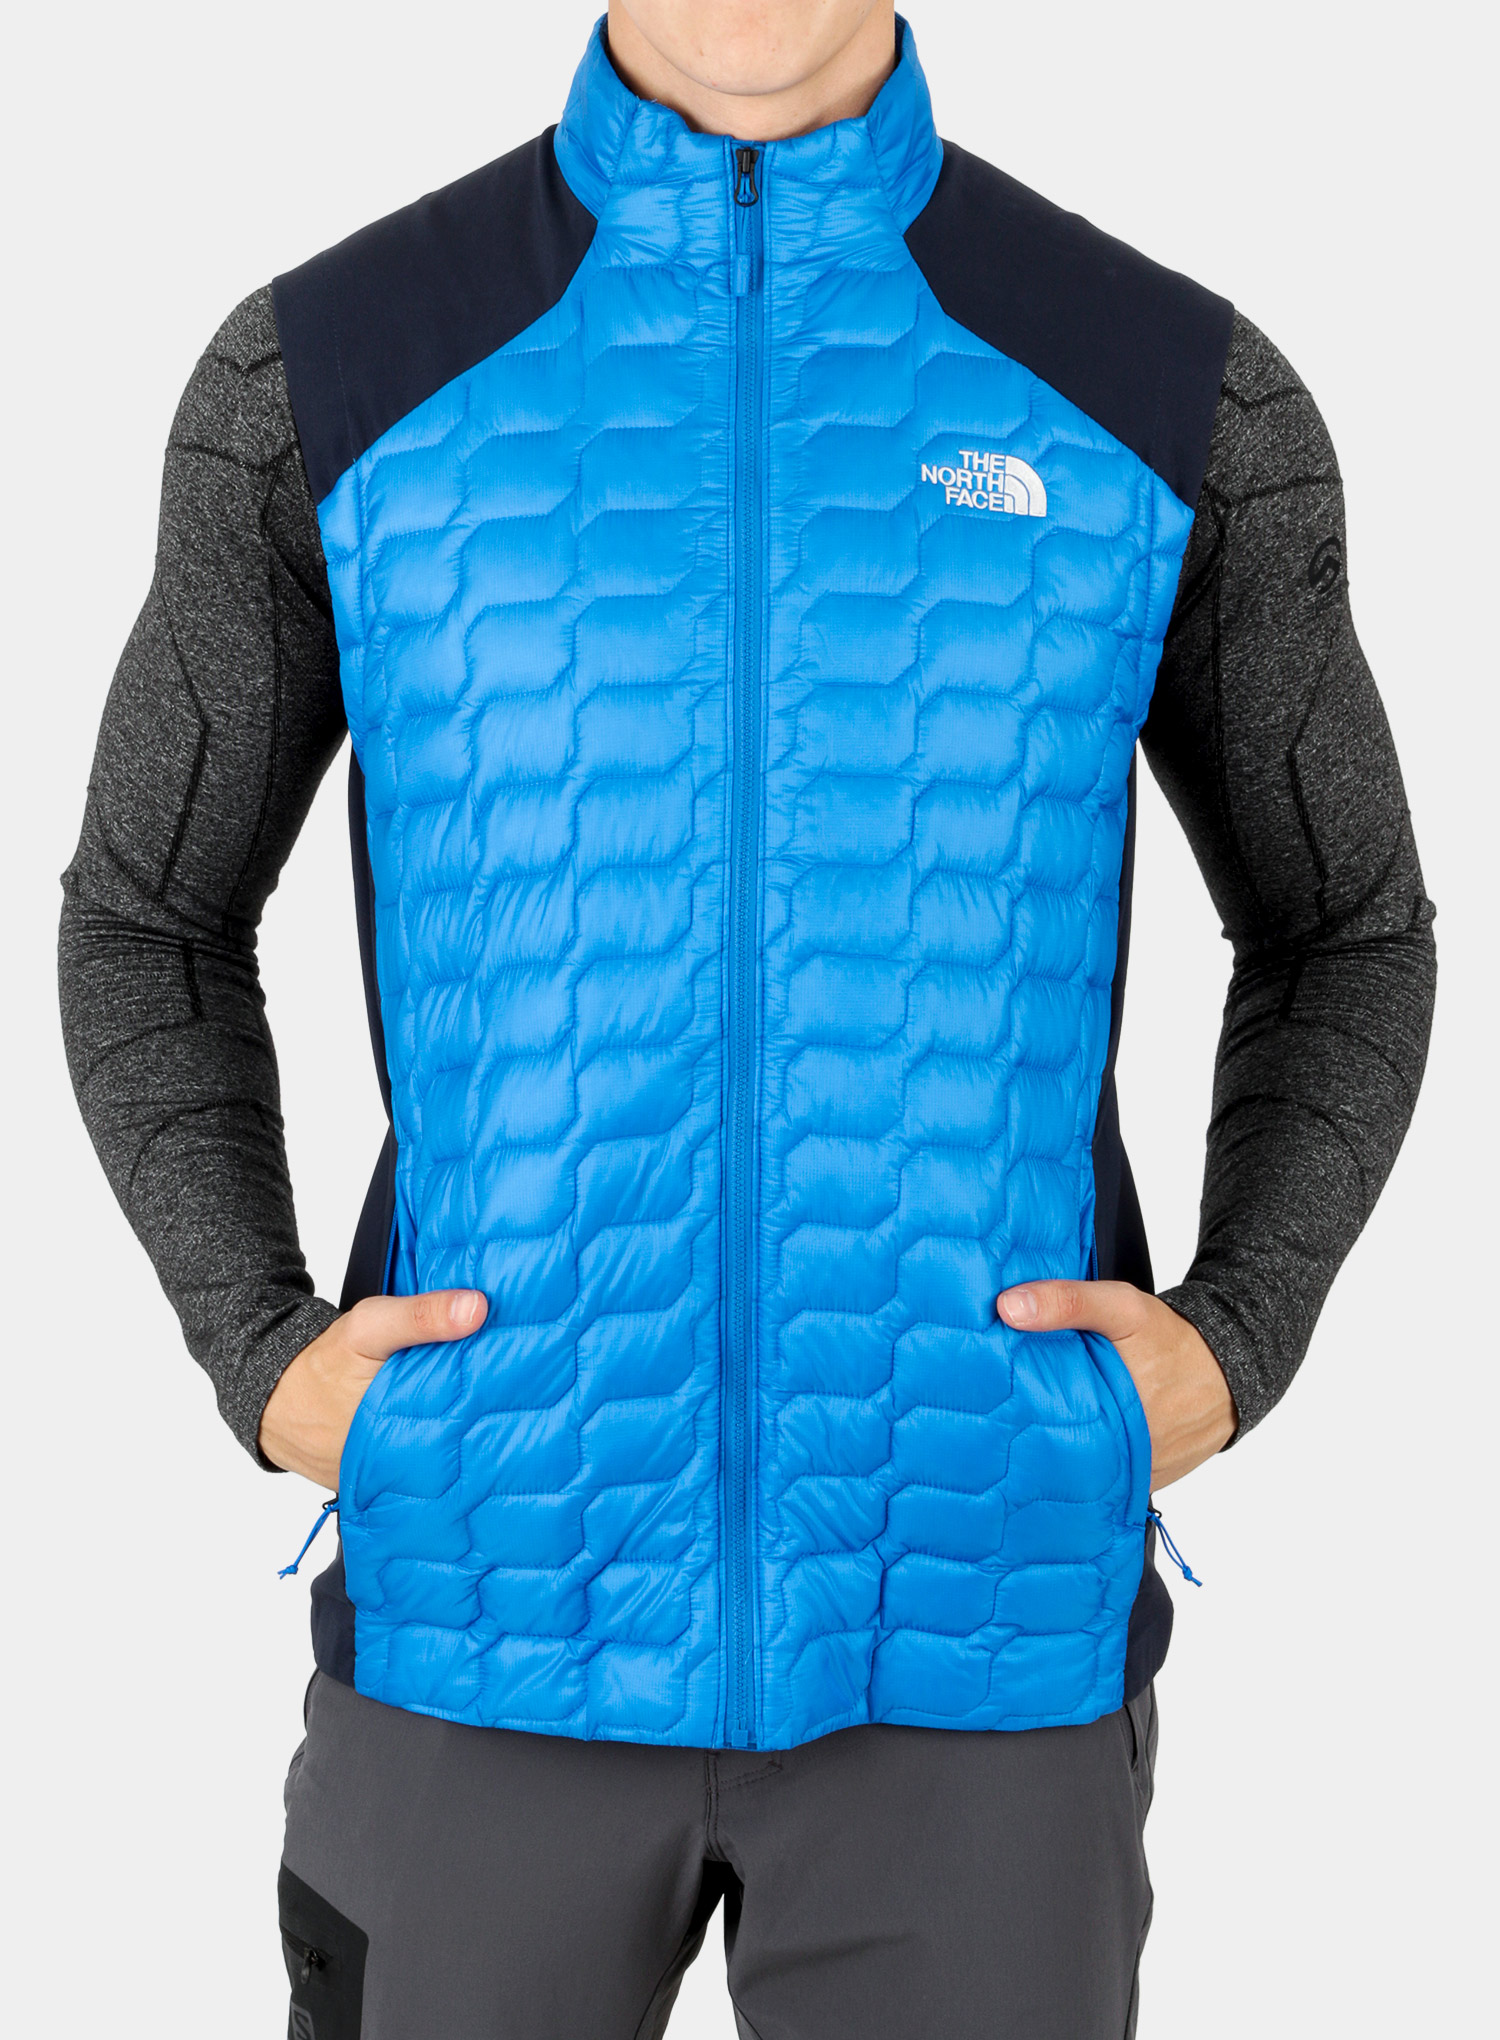 Kamizelka The North Face New Tansa Thermoball Vest - bomber blue/navy - zdjęcie nr. 1